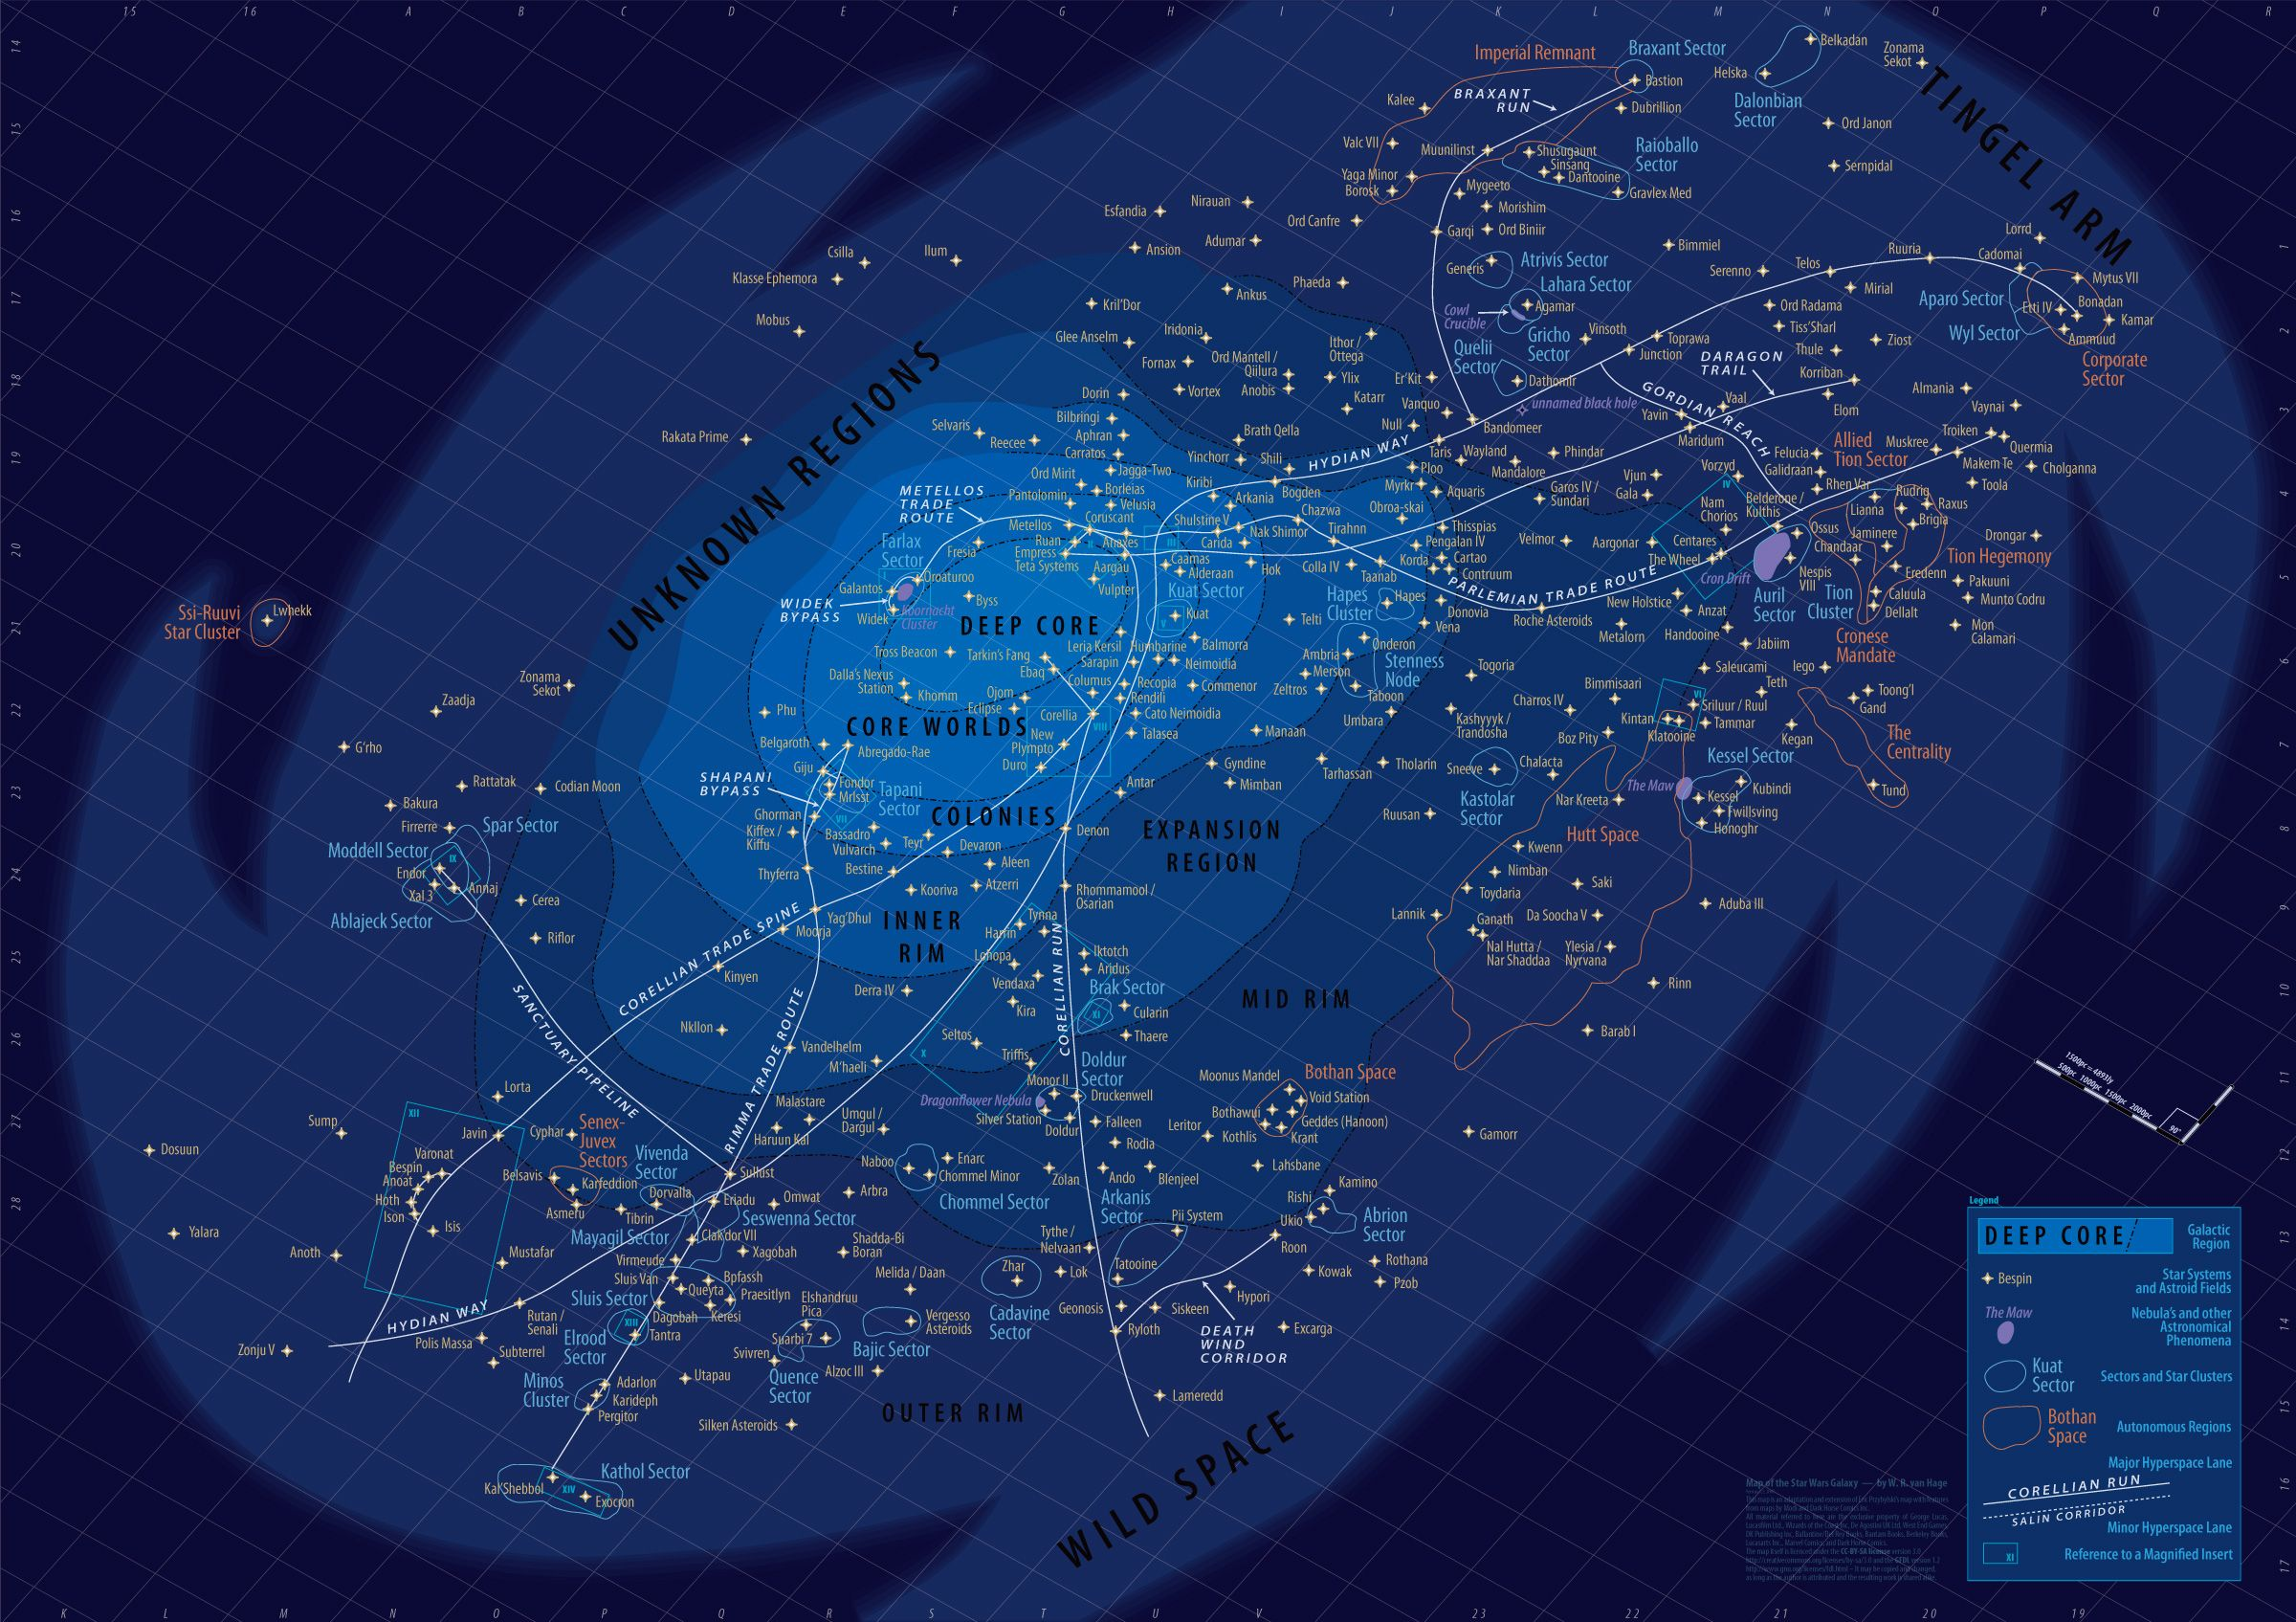 Star Wars Universe Map O.M.G! Insane map of the Star Wars universe! #starwars